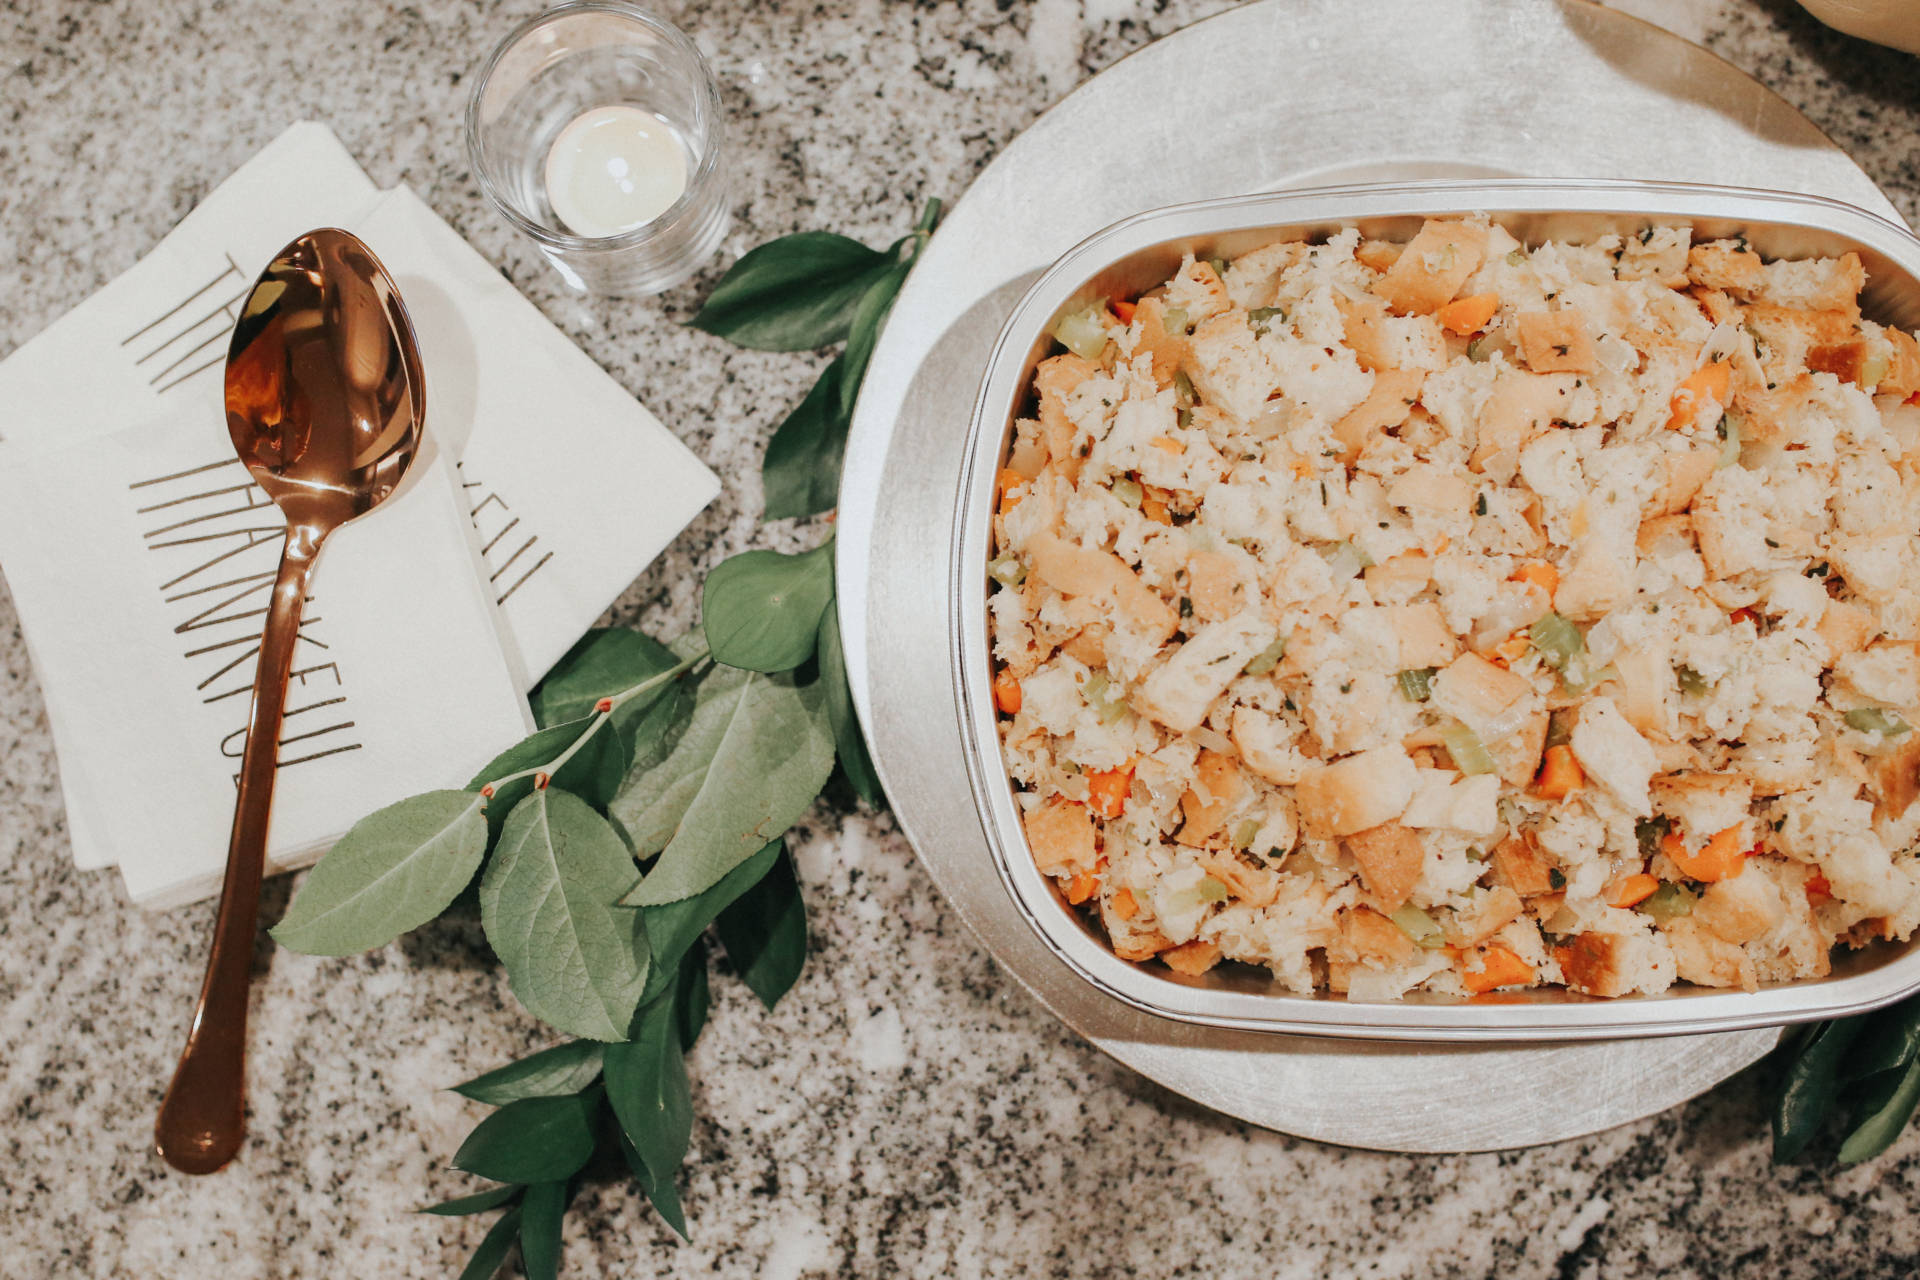 Not only is all the Holiday Meal food from Nugget Markets delicious but it is fresh and made in house! Let Nugget Markets do the work for you this holiday season so you can party and enjoy your guests!